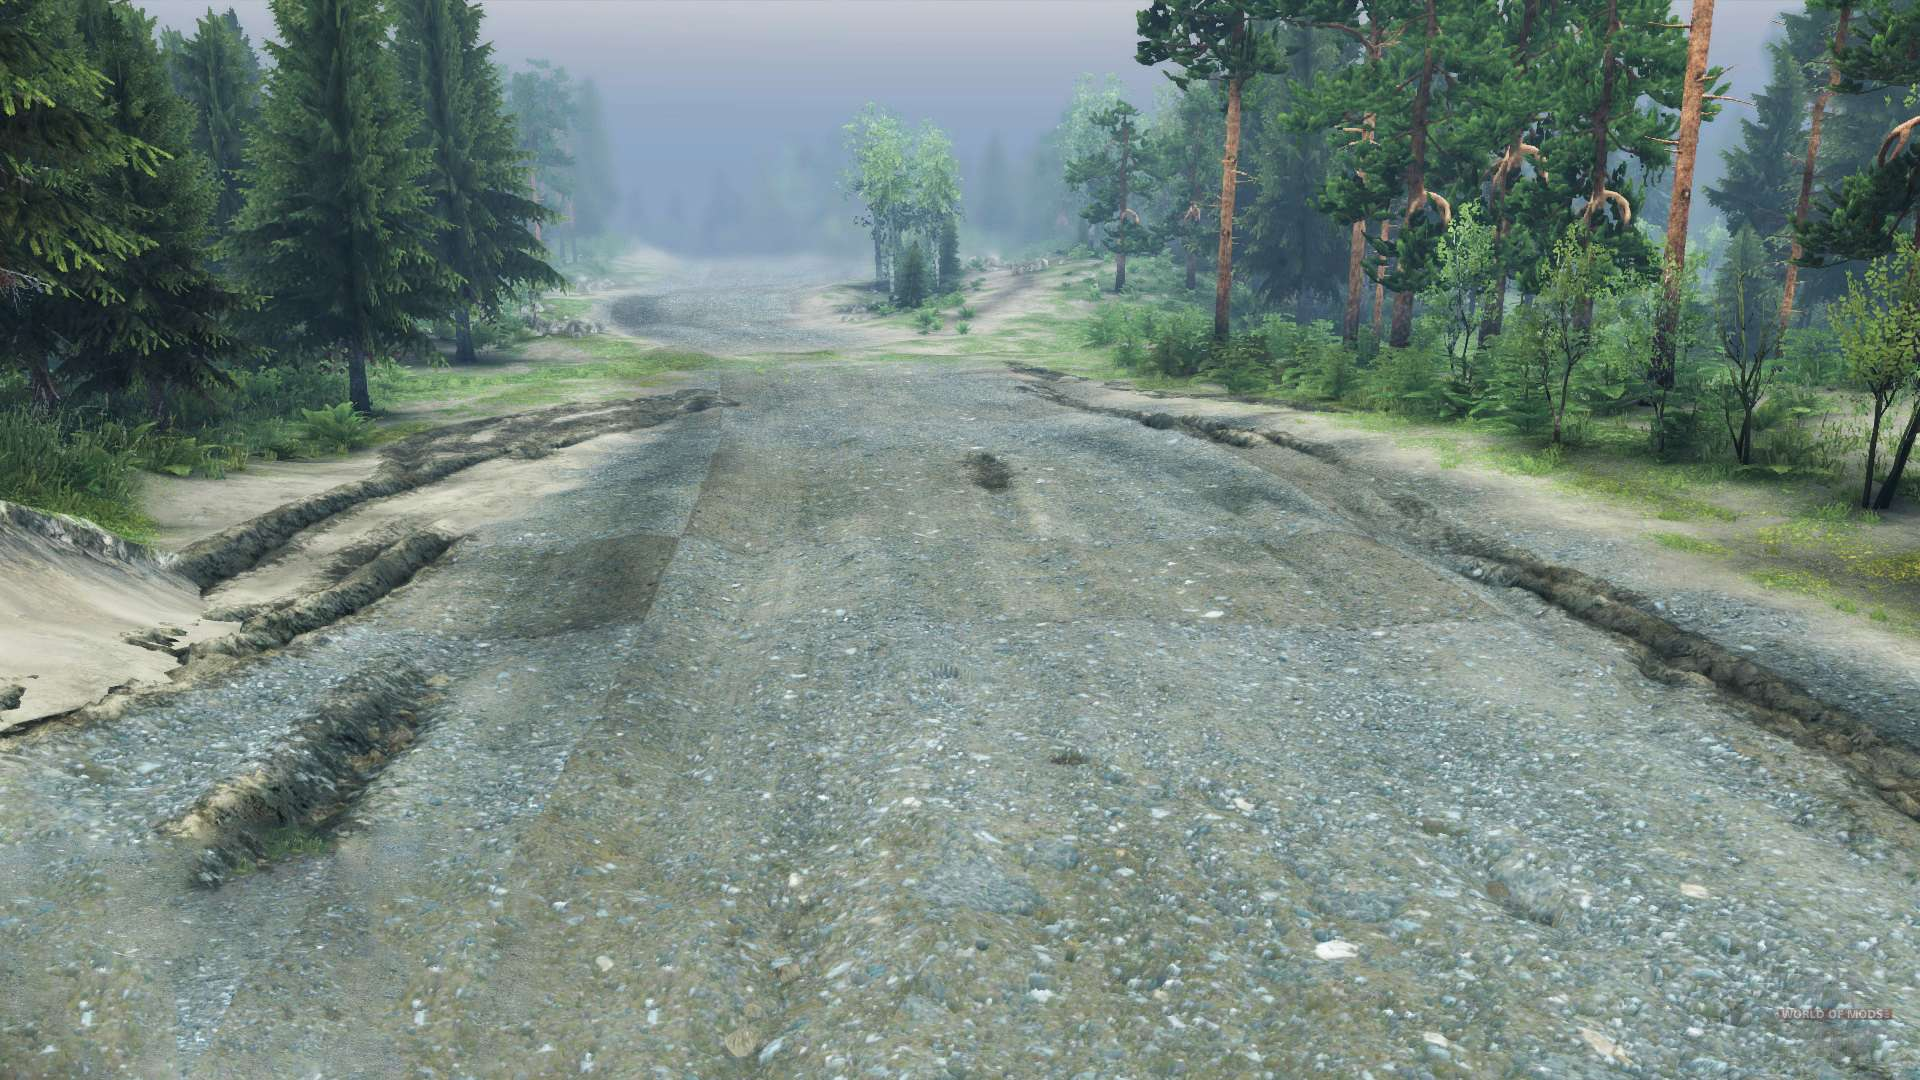 Crushed Canyon Cobble 3 8 3 4 : Crushed stone road for spin tires